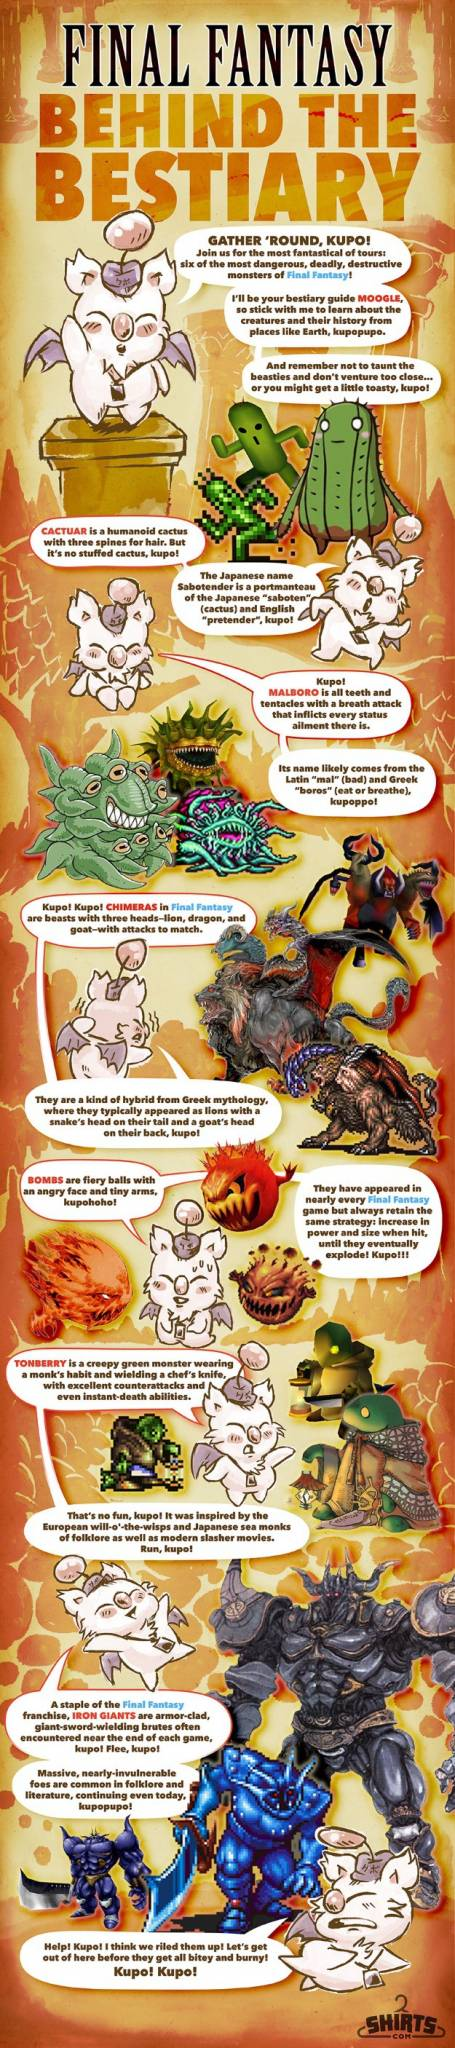 Final-Fantasy-Behind-the-Bestiary